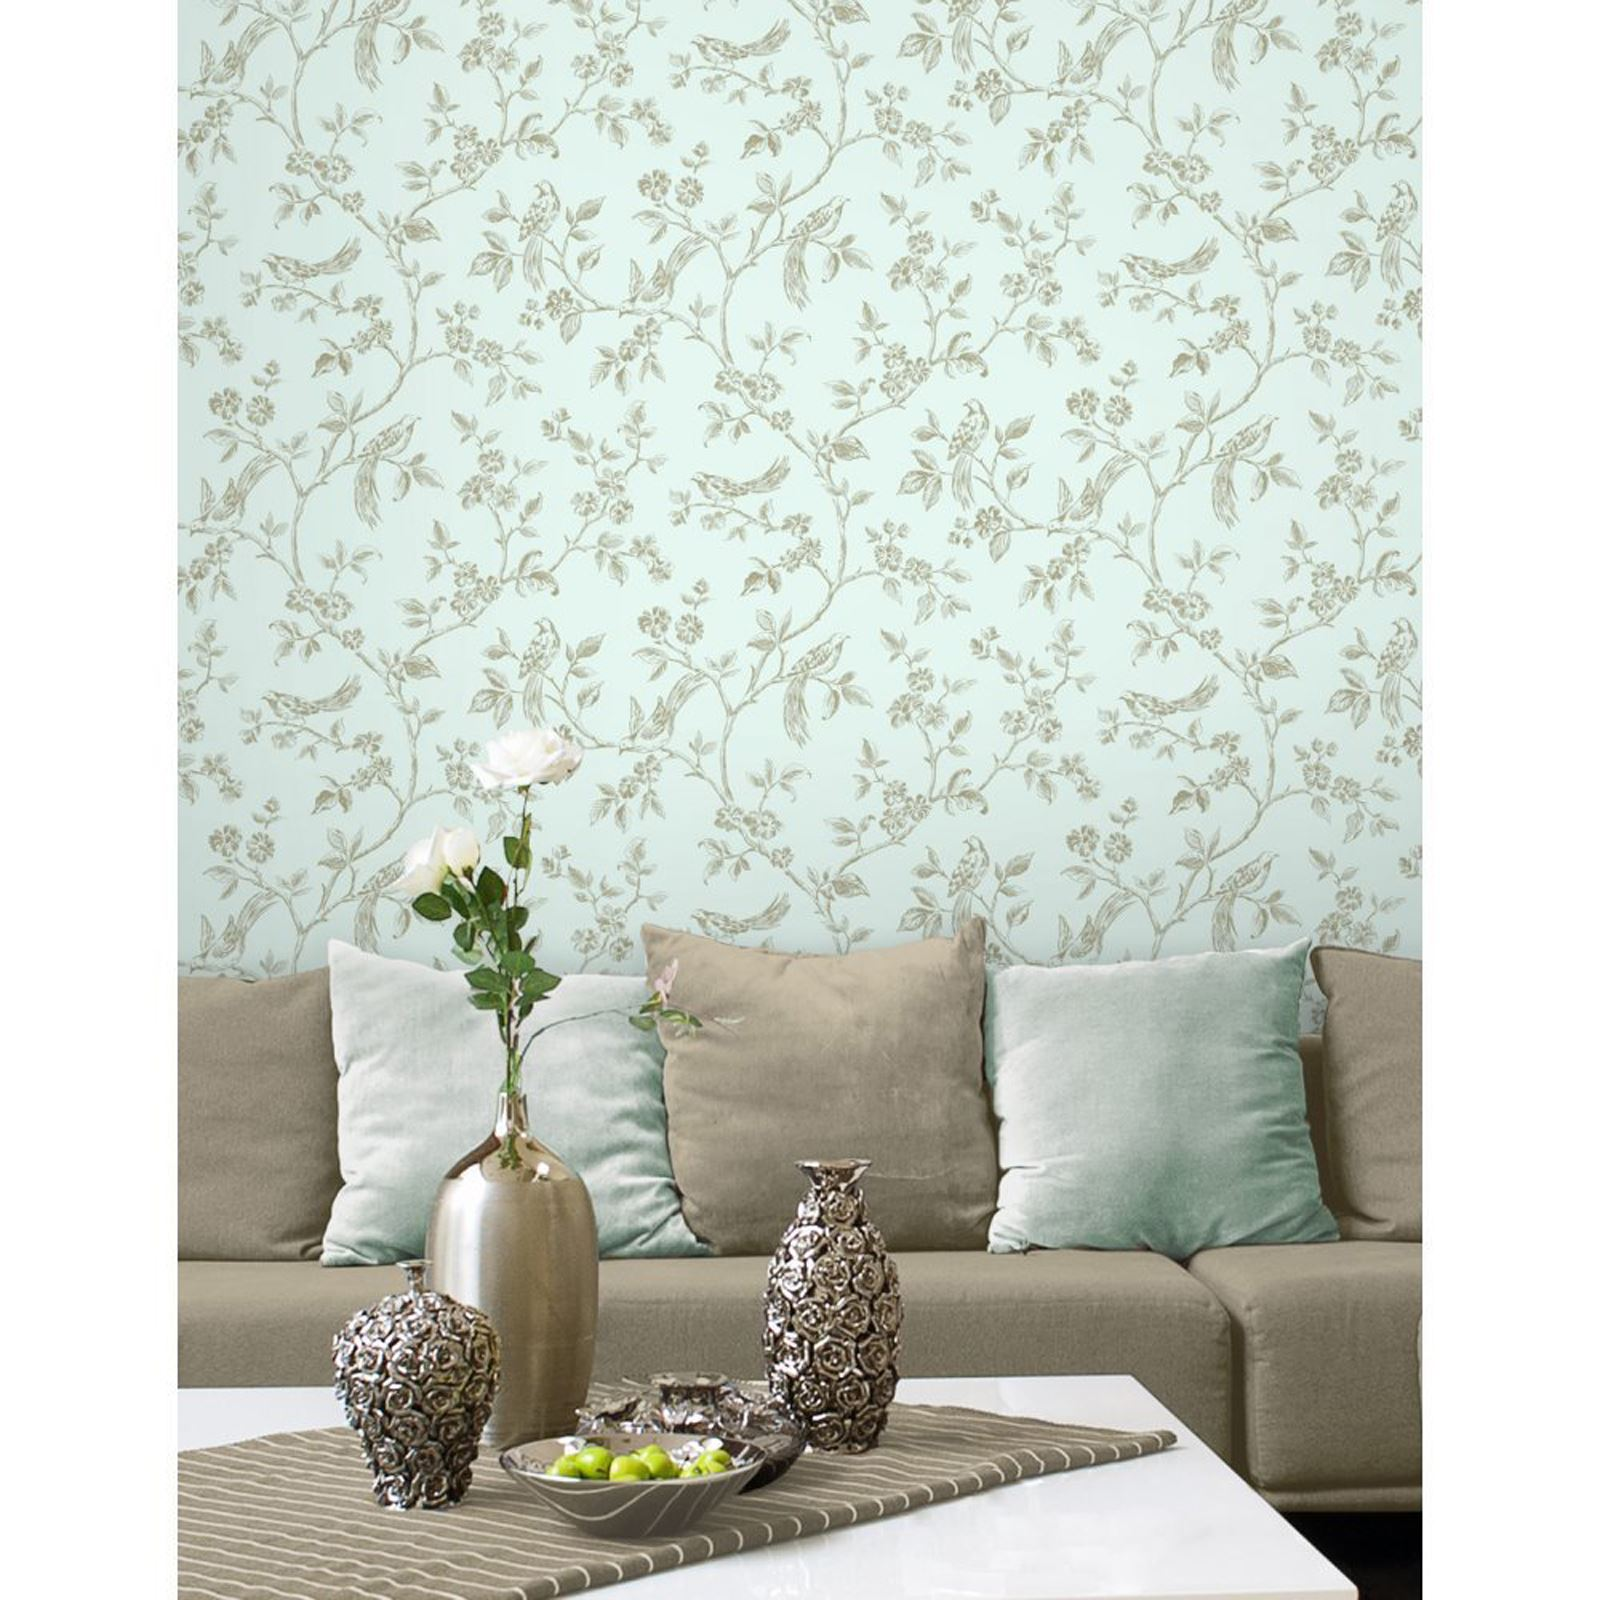 FINE DÉCOR TEAL DUCK EGG WALLPAPER